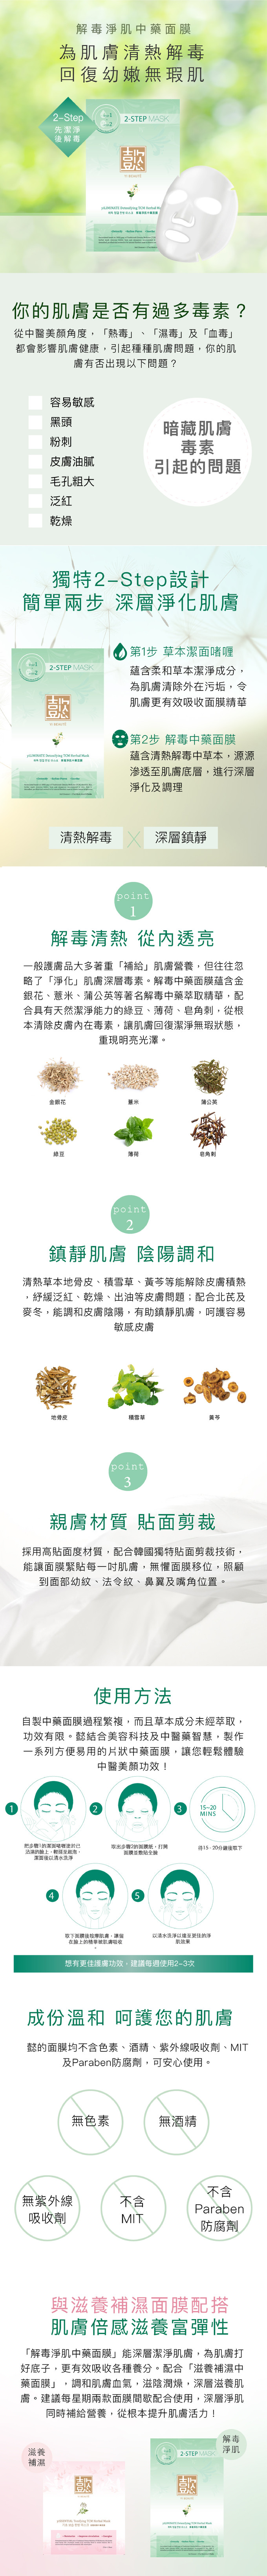 YI_Detox Mask Website Product One-Pager_